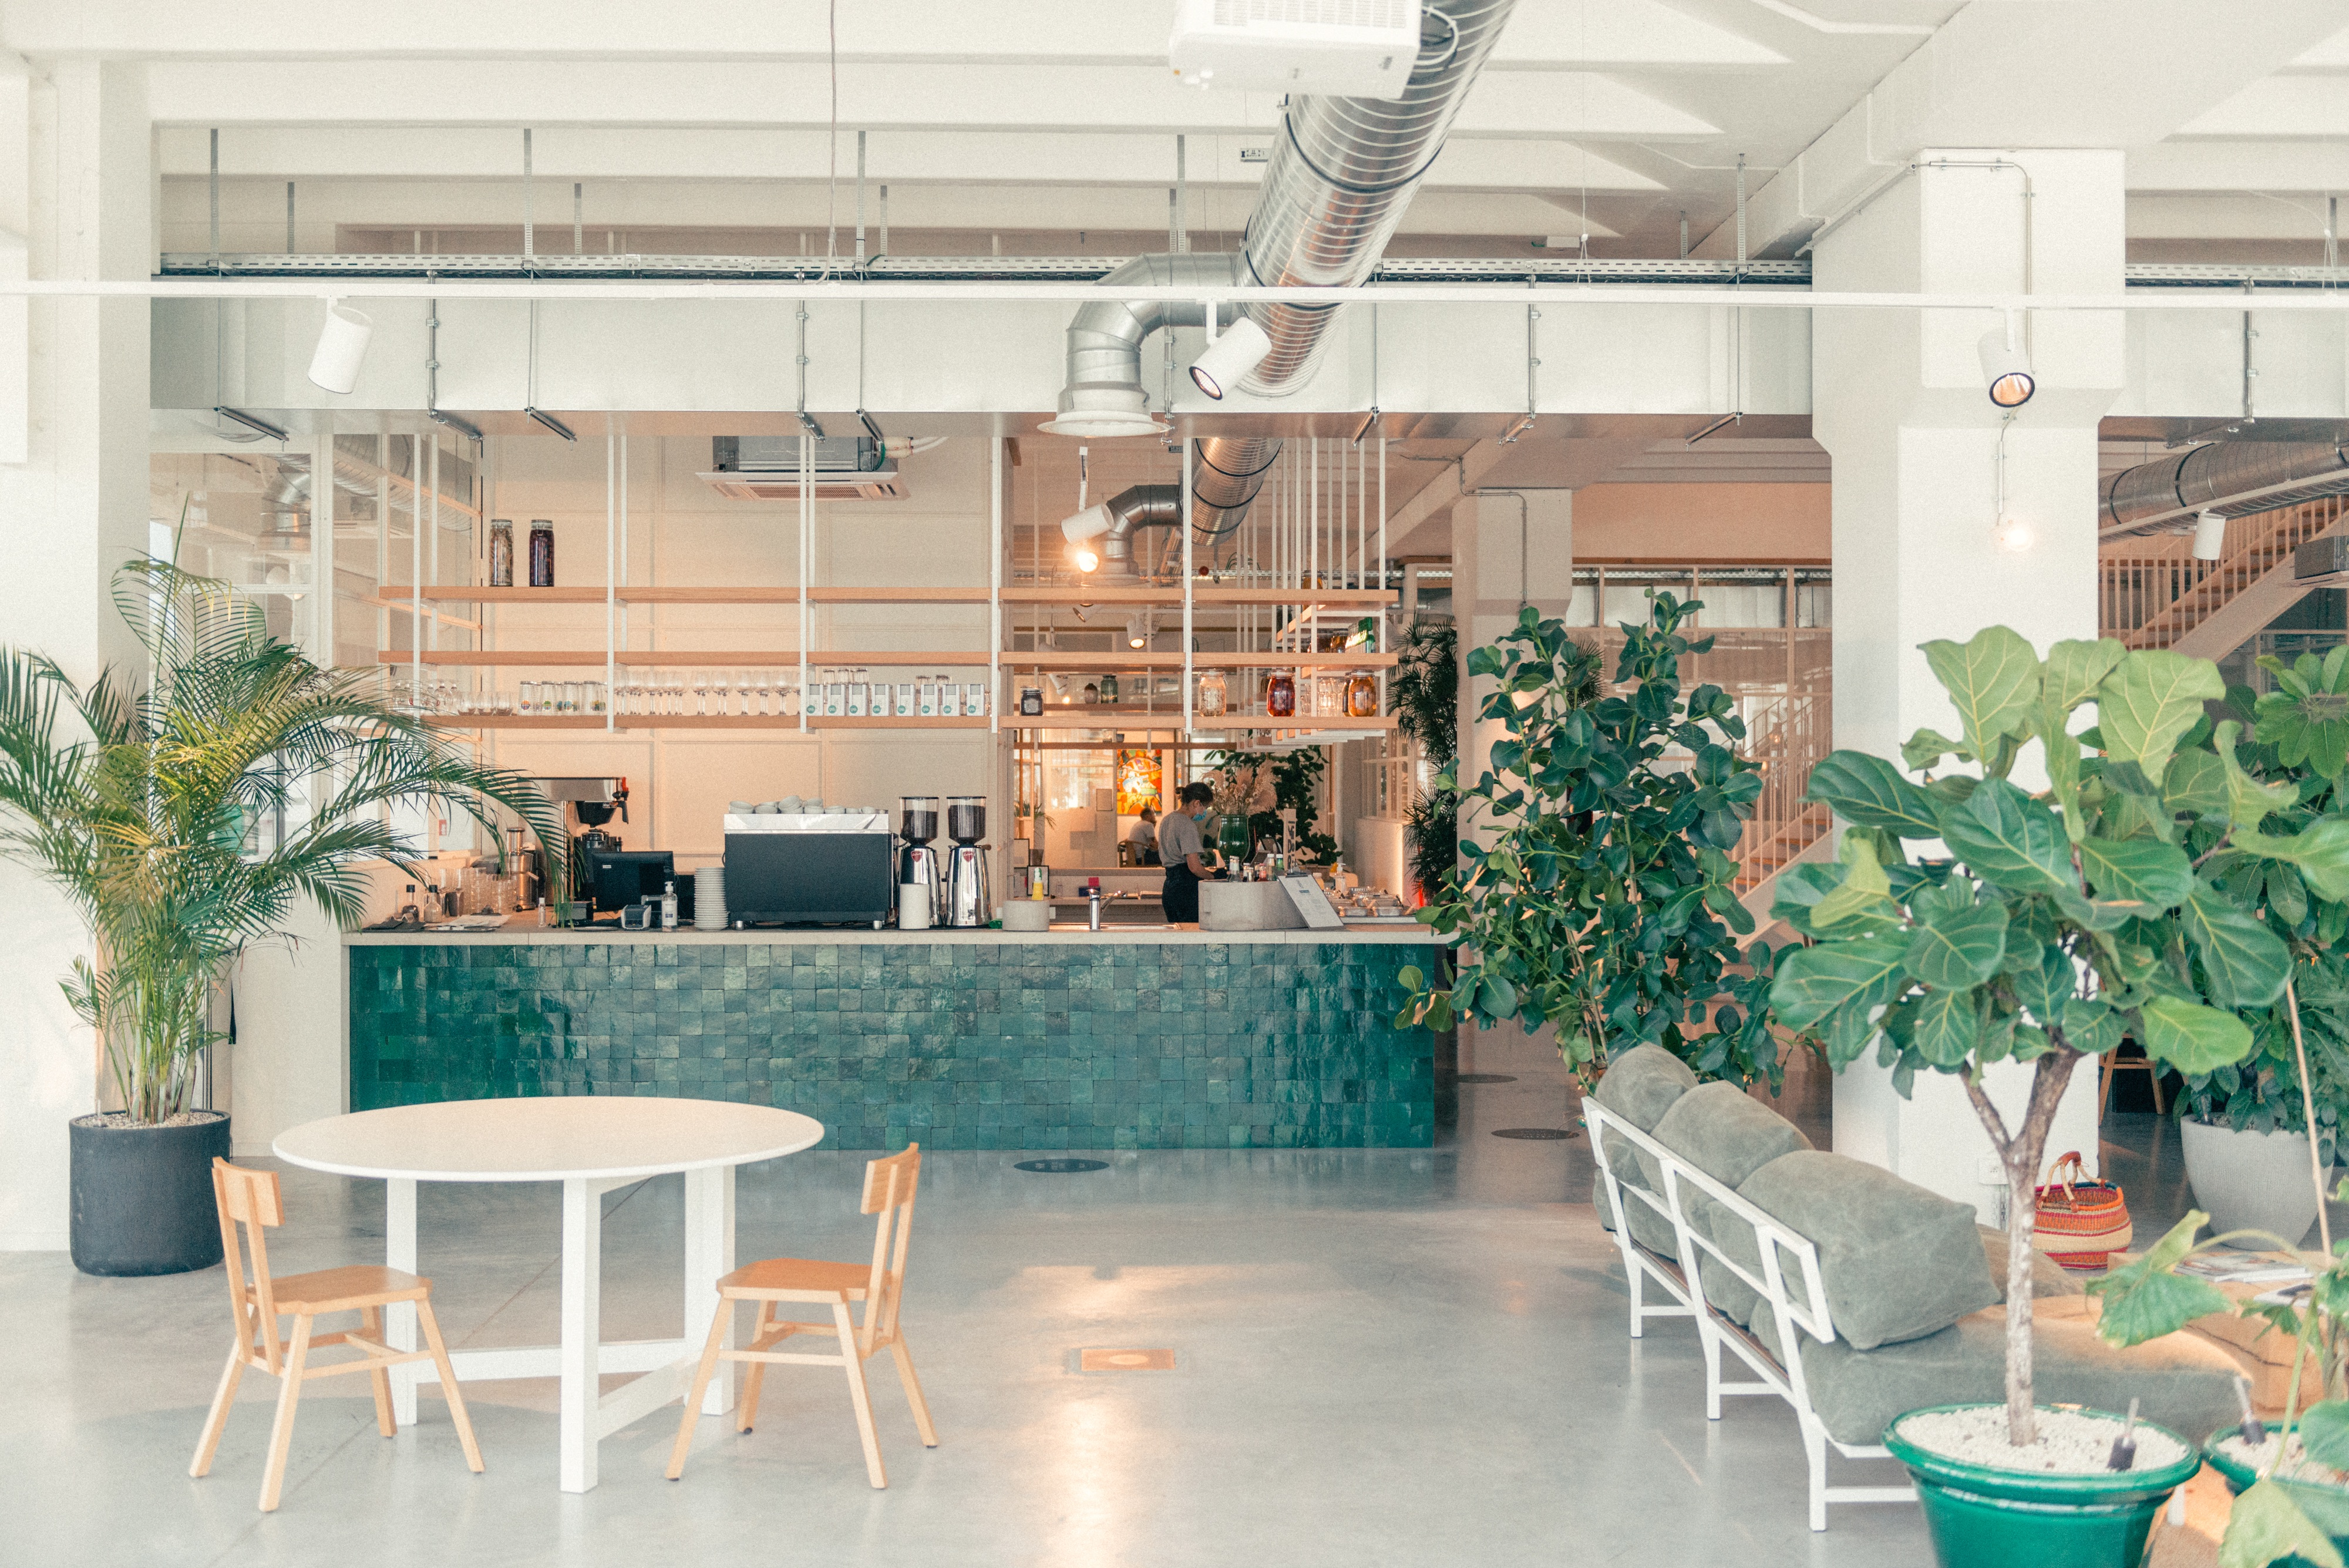 midori hub, a midori lunch location, in Fosbury and Sons Alfons in Brussels